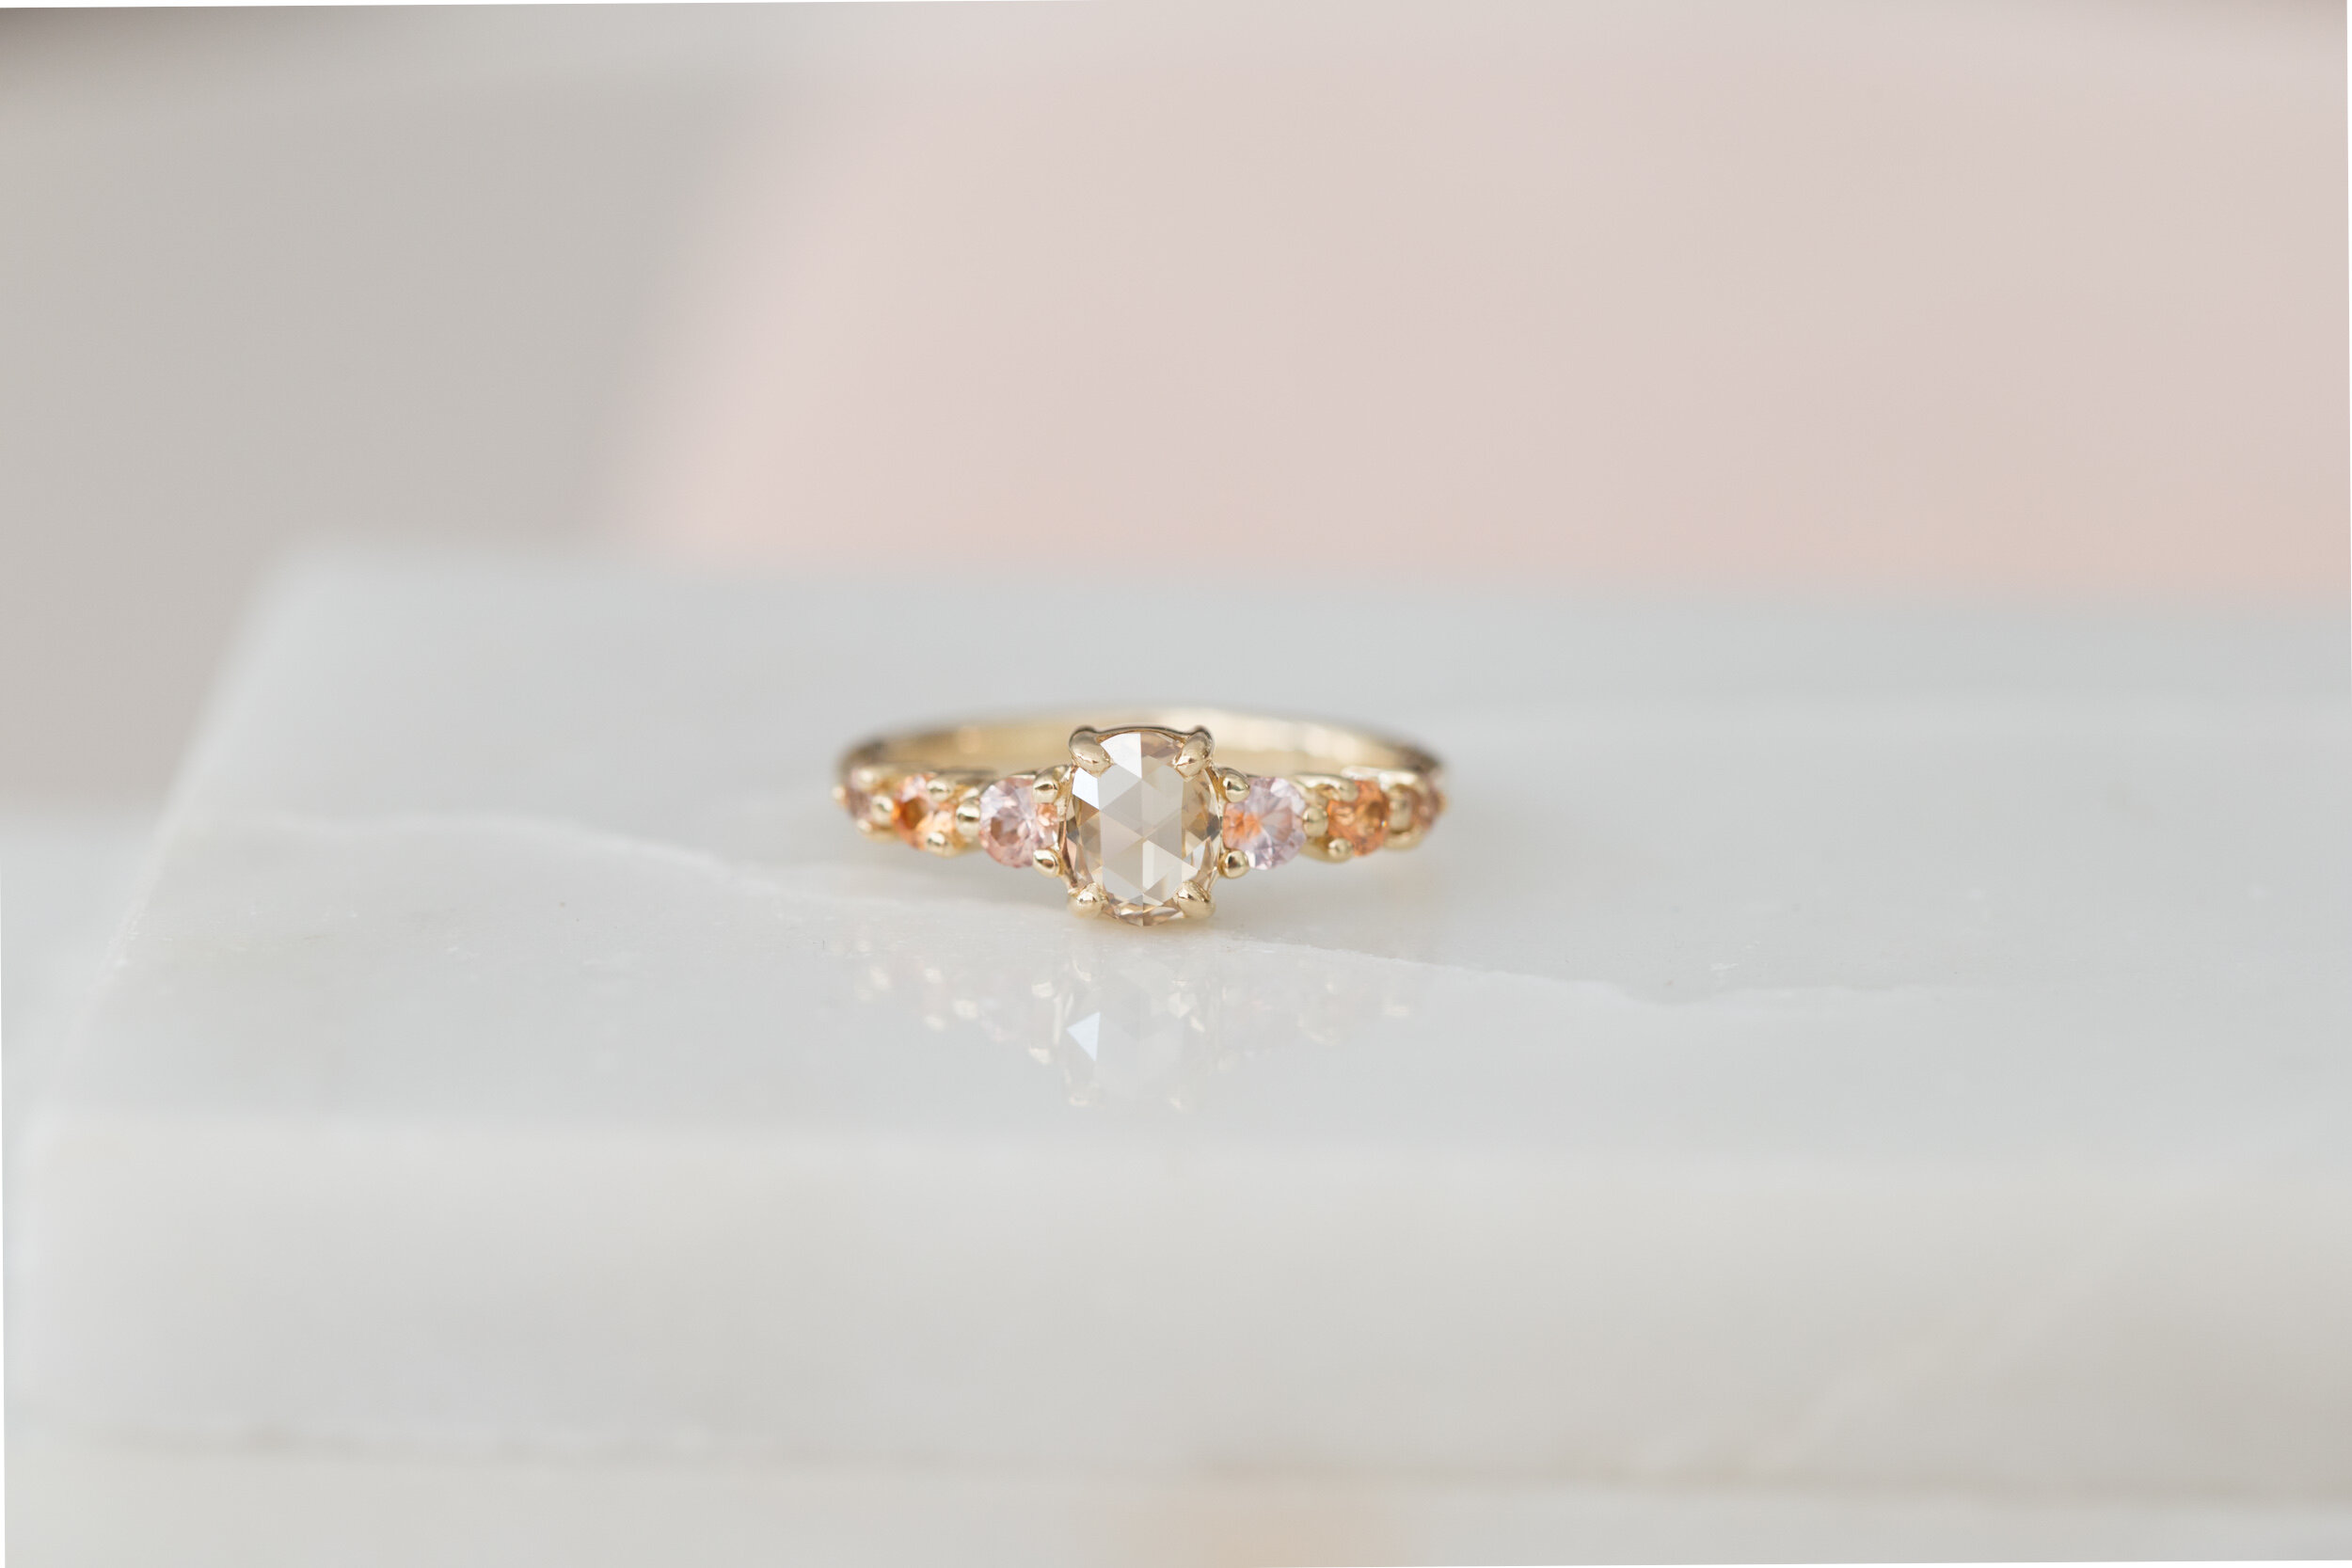 Rose Cut Oval Champagne Diamond Peach Sapphire Accent Engagement Ring One Of A Kind Mineralogy